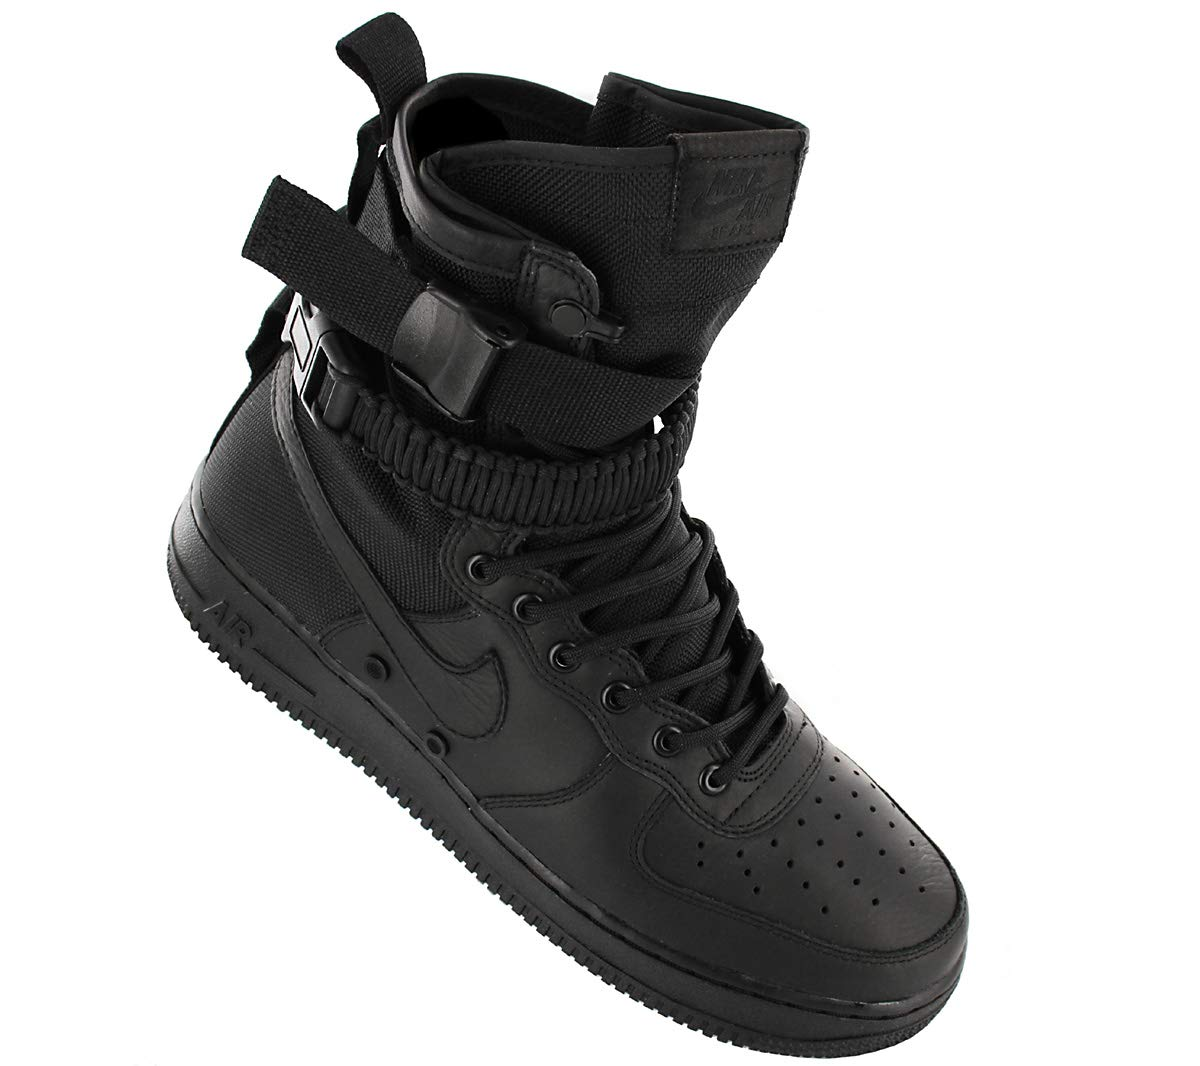 61wN18cZ4wL - Nike Air Force SF AF1 High Boot Sneaker Boots Black Men Trainers Sneaker Shoes